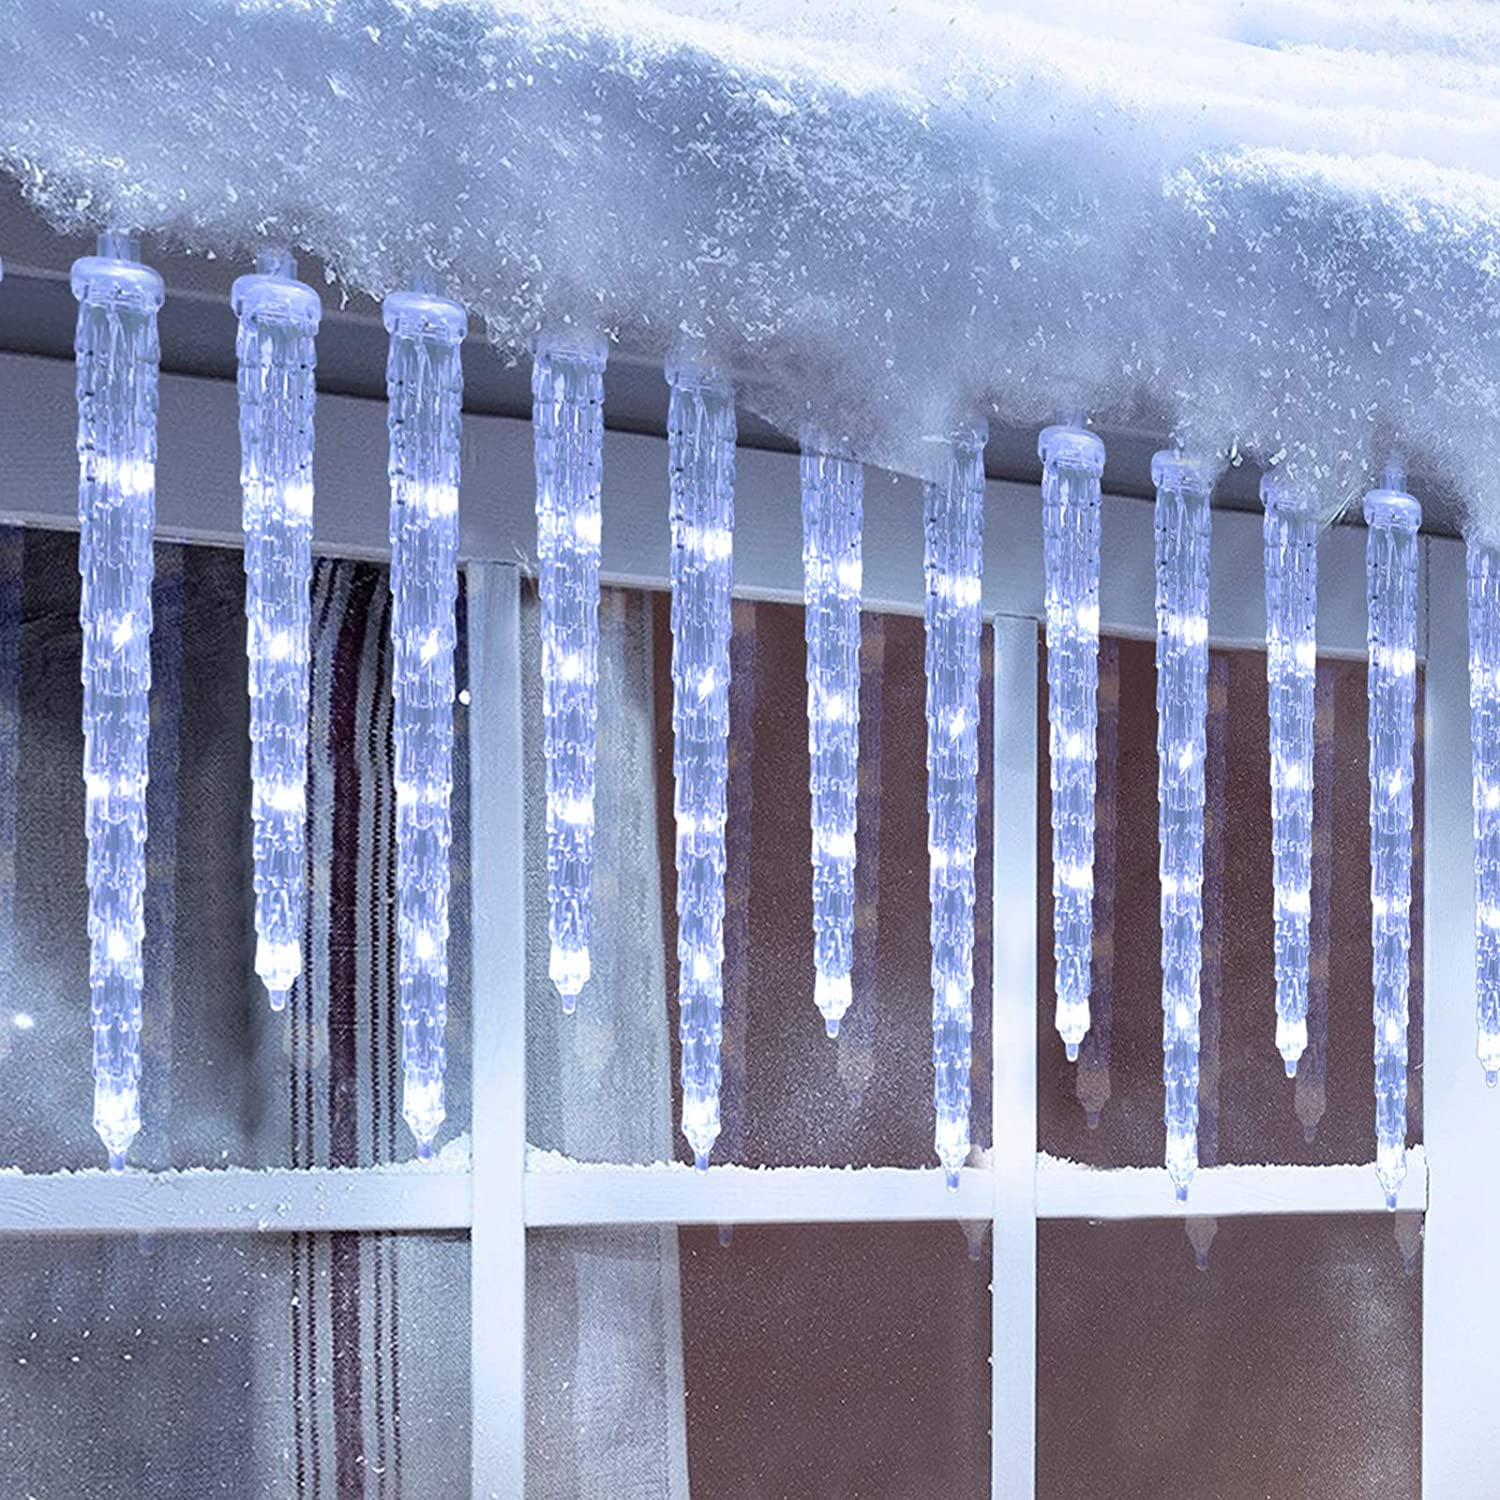 Christmas Icicle Lights, 20 icicles 90 LED Icicle Lights, Outdoor Indoor Crystal Ice String Lights, Connectable White Icicle Lights for Christmas Decorations